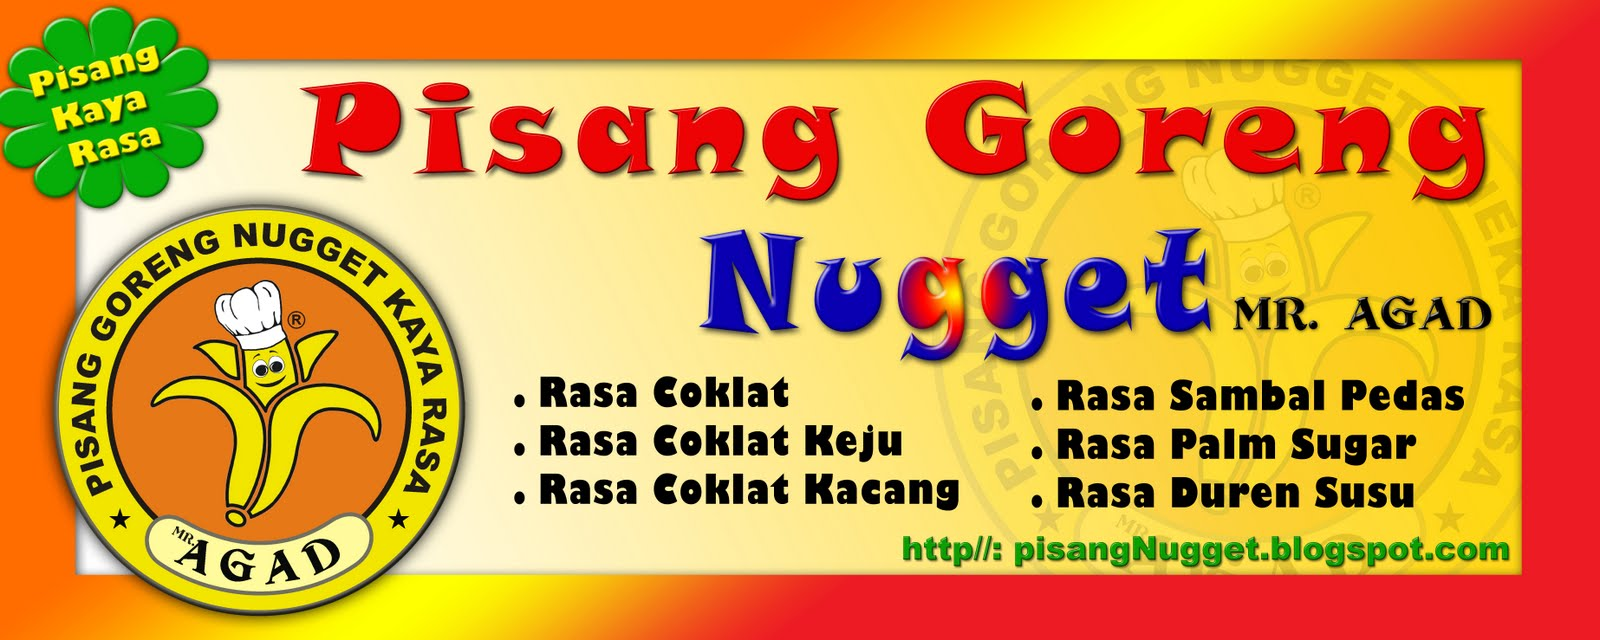 pisang nugget kaya rasa quotmragadquot